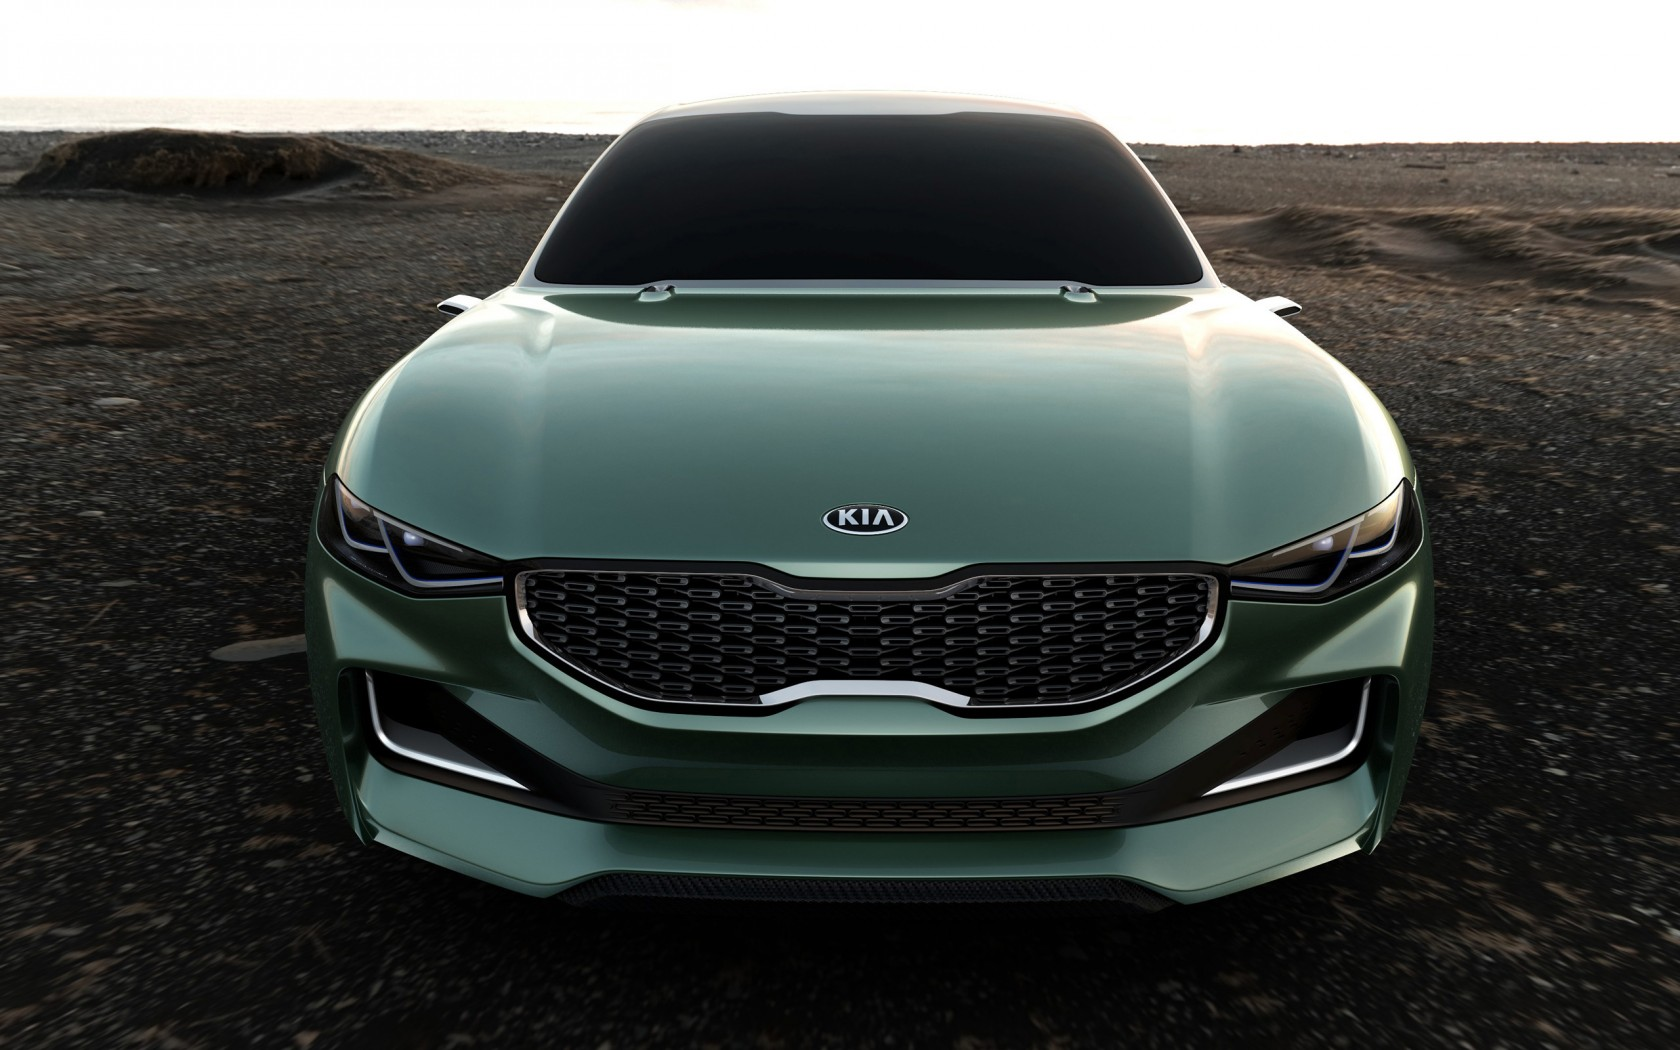 Lincoln Wallpaper Car 2015 Kia Novo Concept Wallpaper Hd Car Wallpapers Id 5269